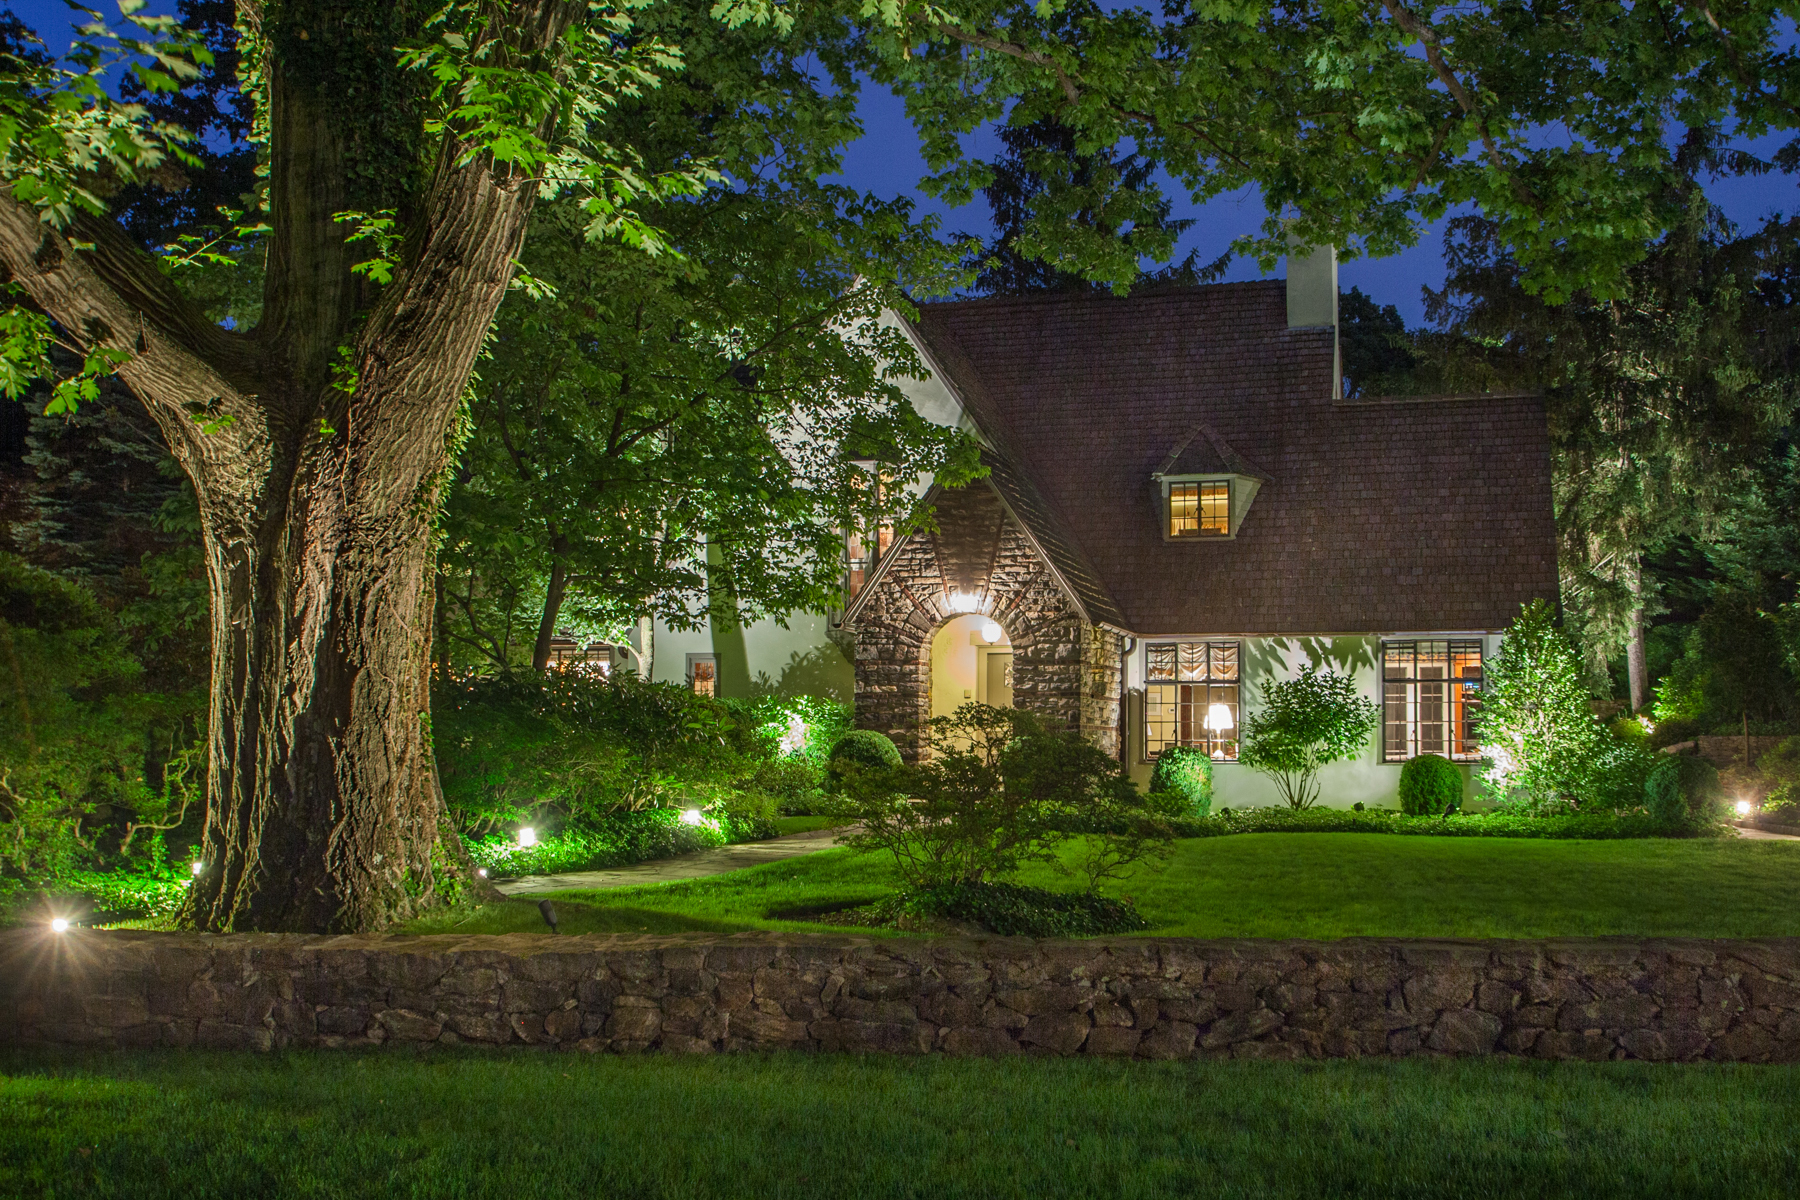 Single Family Home for Sale at Beautiful Normandy Tudor 4 High Road Bronxville, New York, 10708 United States